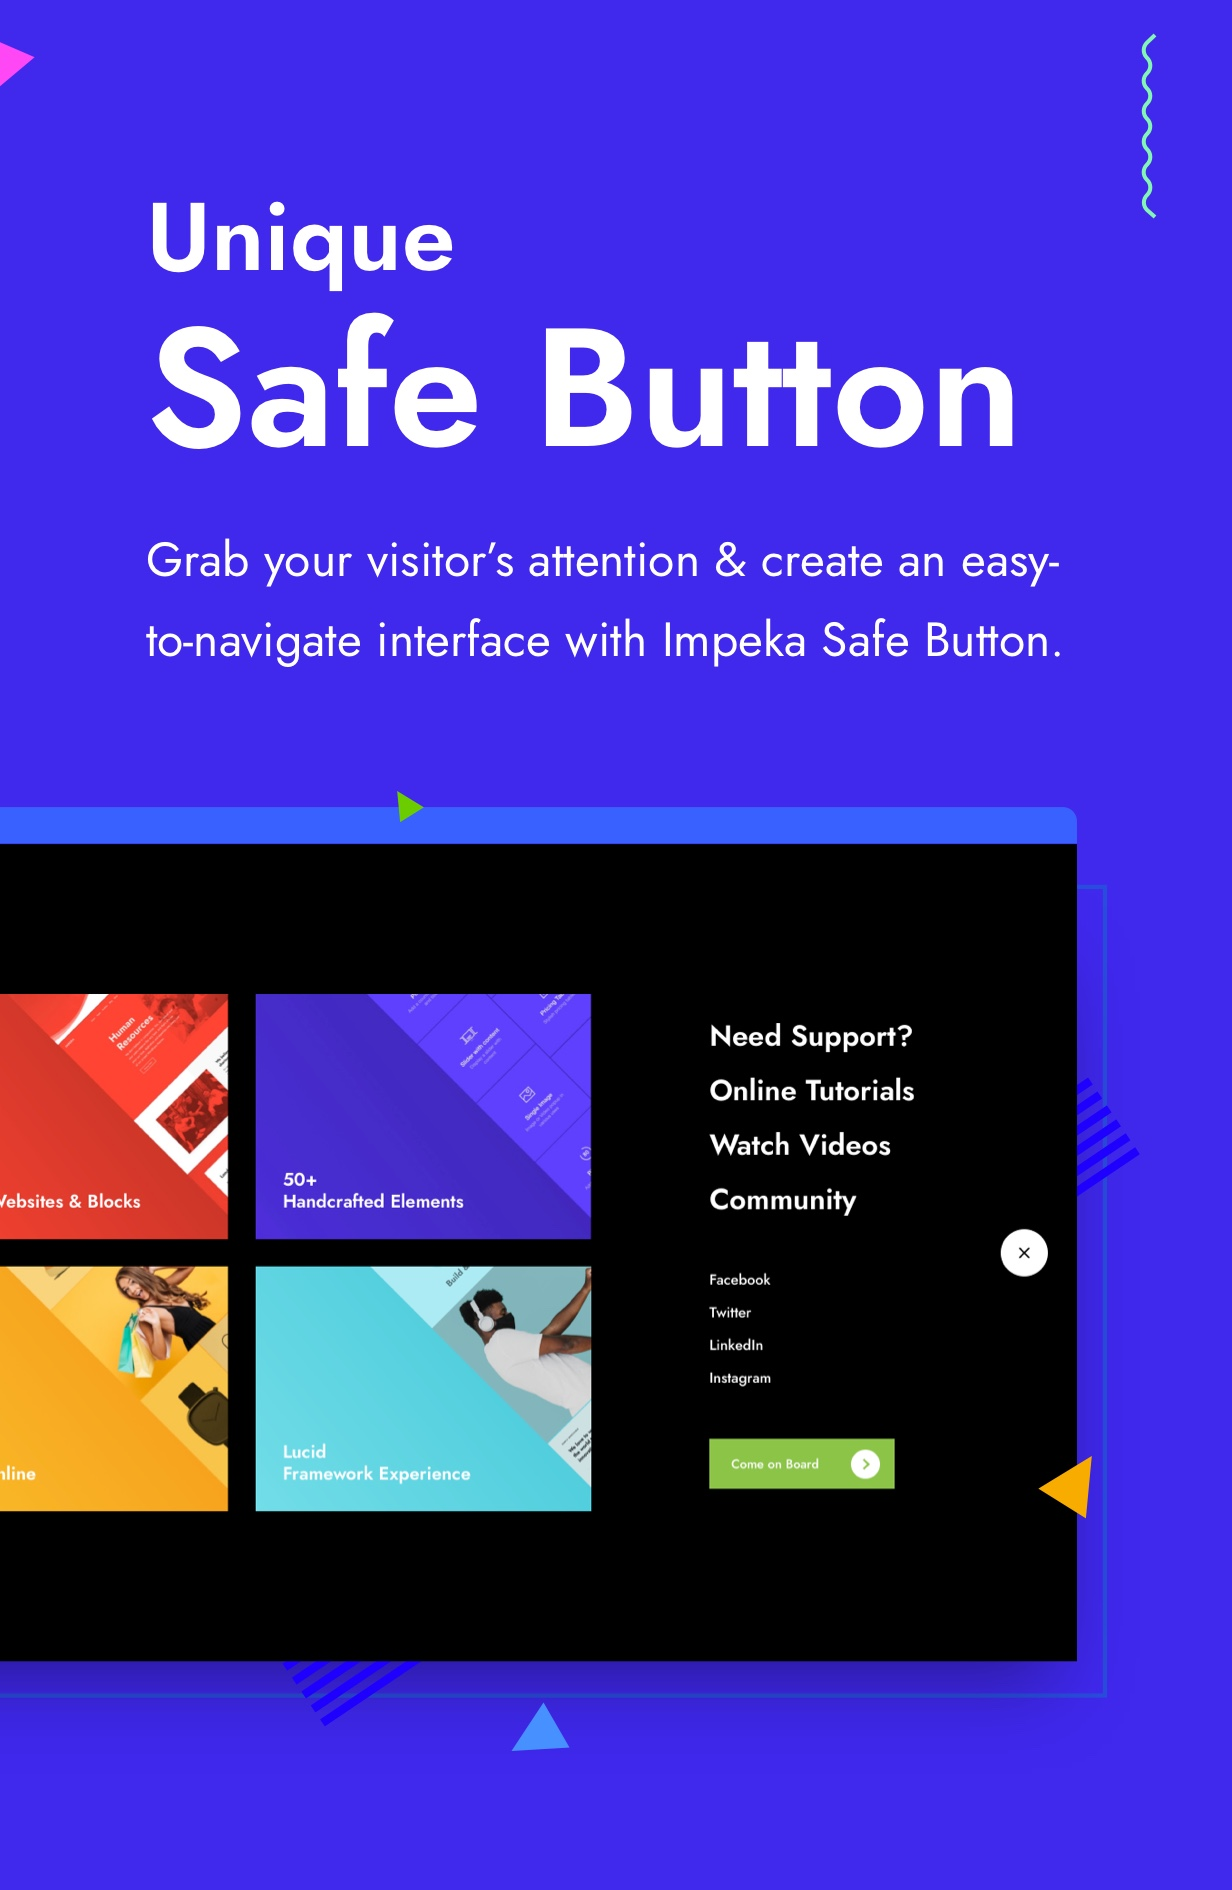 Impeka Premium Multipurpose WordPress theme by Greatives, Safe Button feature